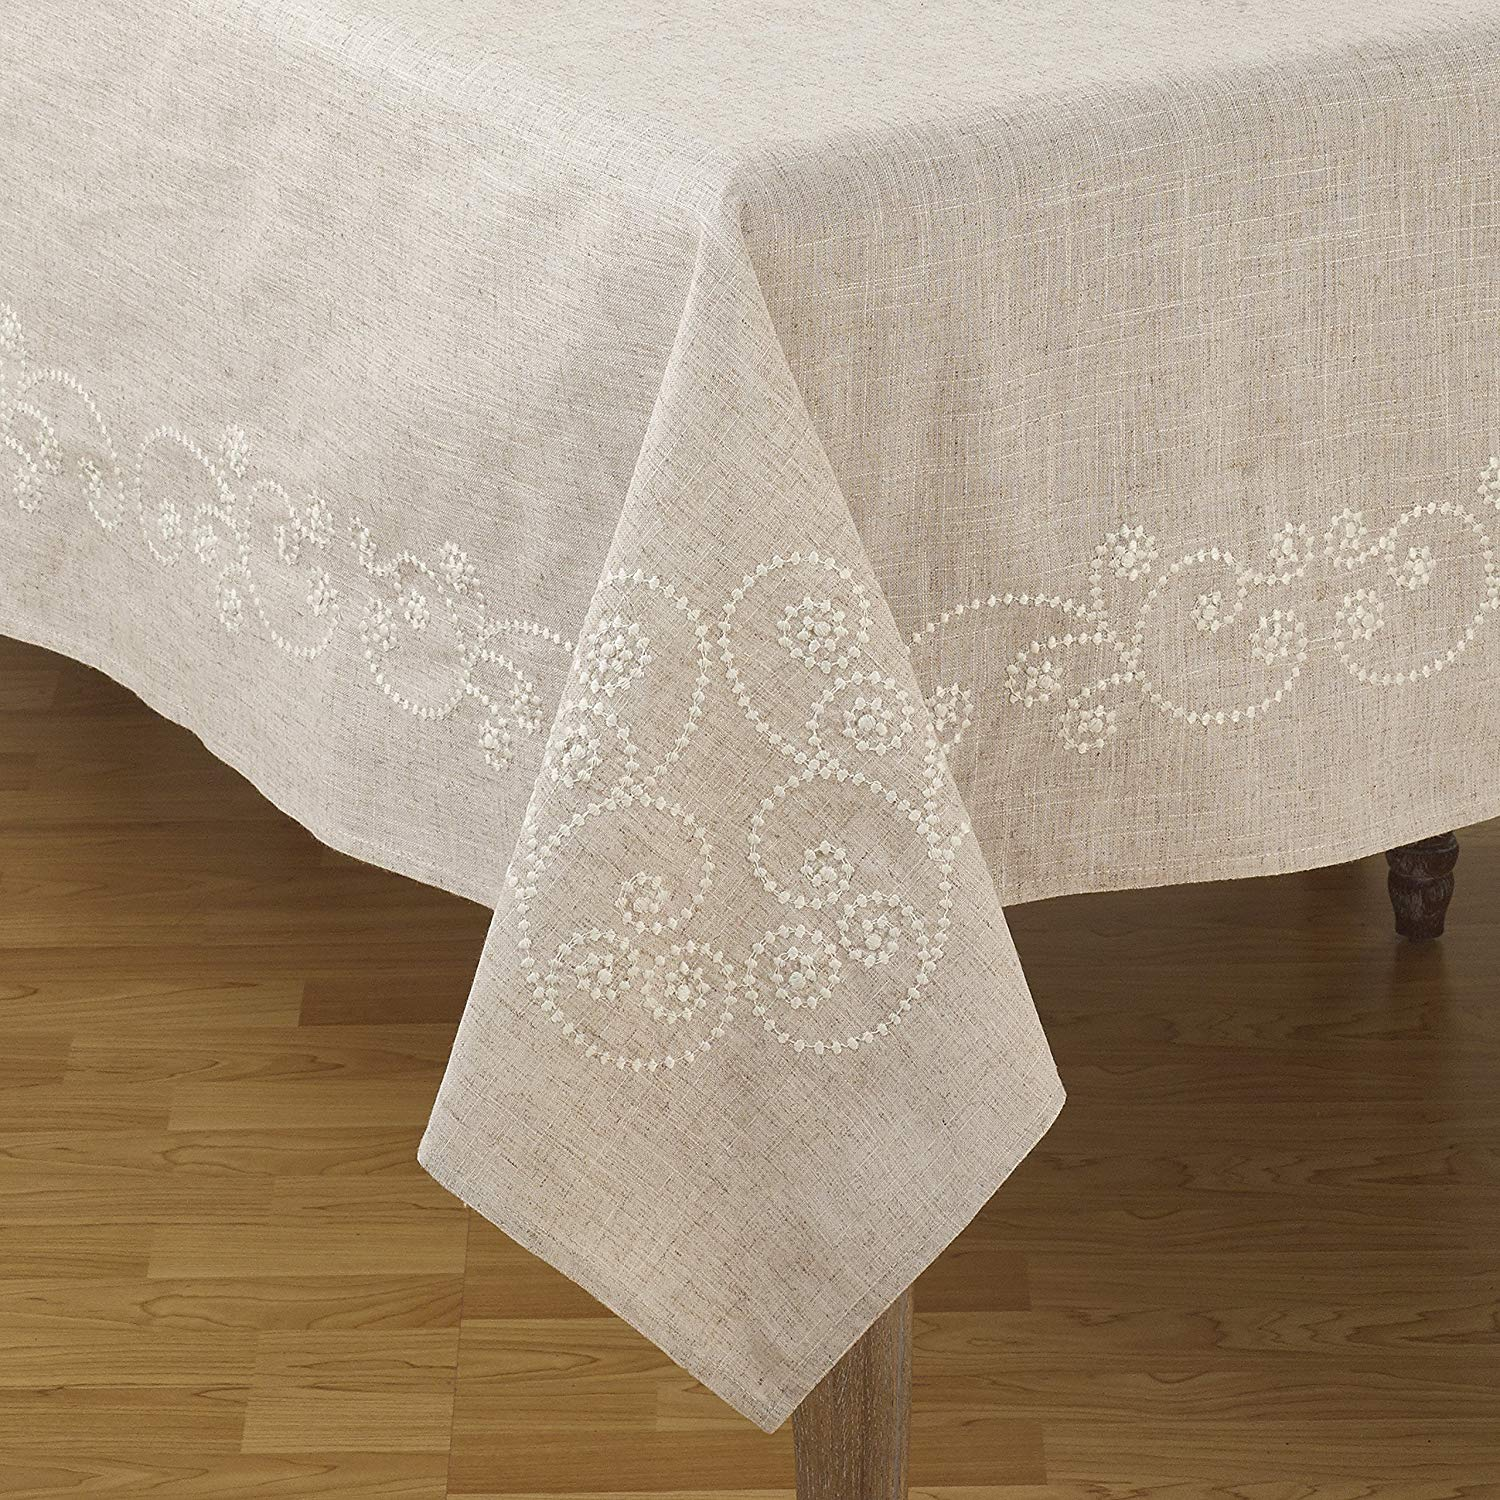 saro lifestyle embroidered swirl design linen blend accent your focus table runner natural home kitchen half circle sofa desk chair rattan garden furniture narrow oak console